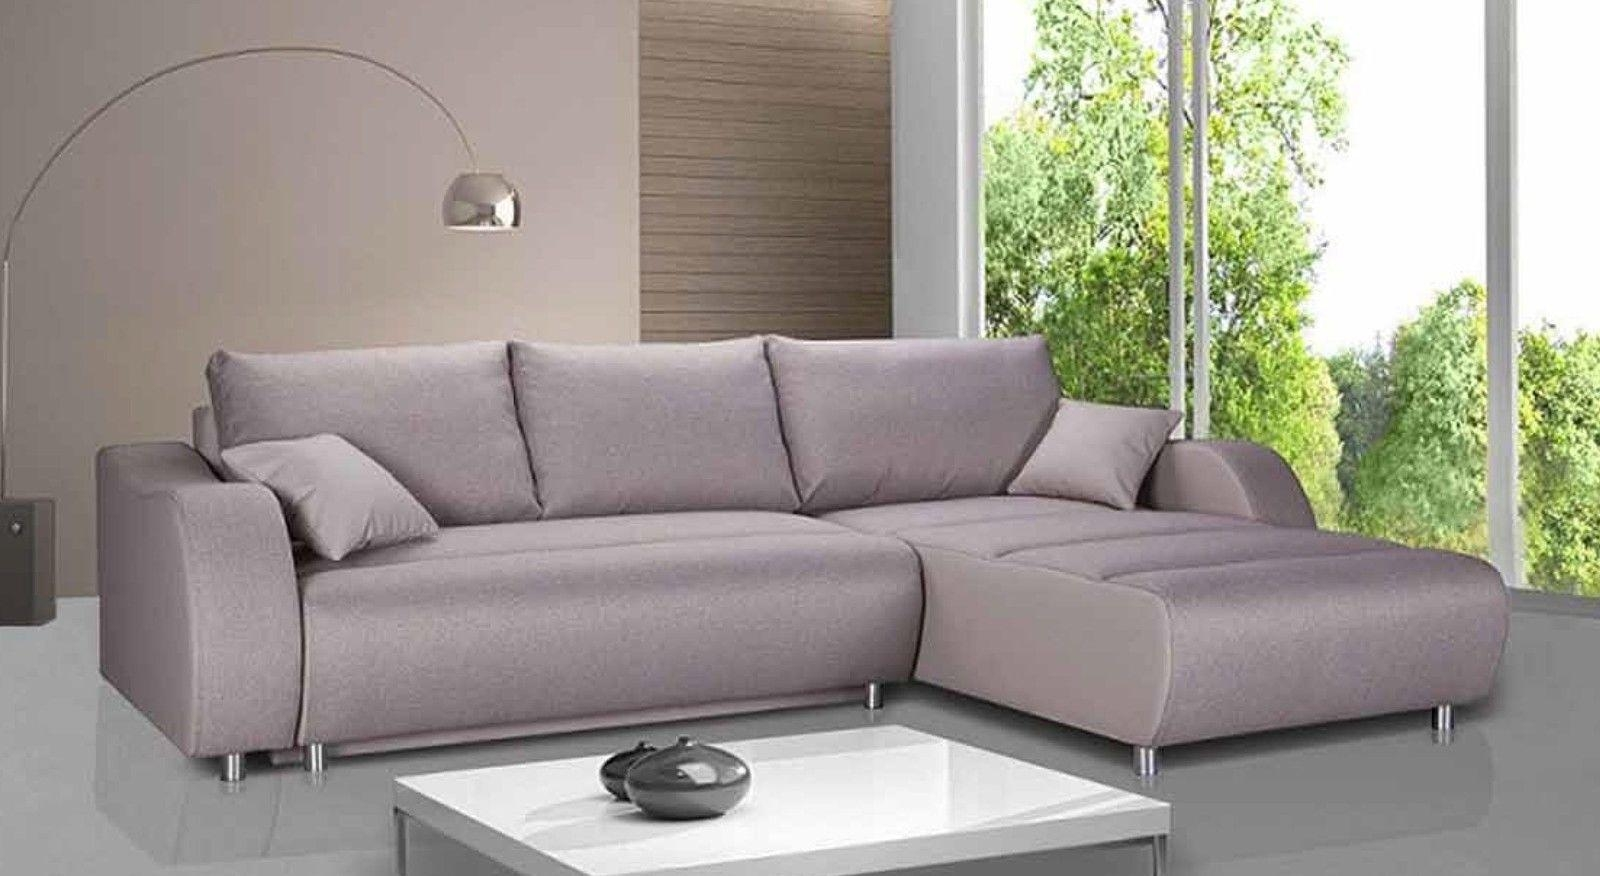 Cheap Corner Sofa Bed Uk – Surferoaxaca With Regard To Cheap Corner Sofa (Image 3 of 20)